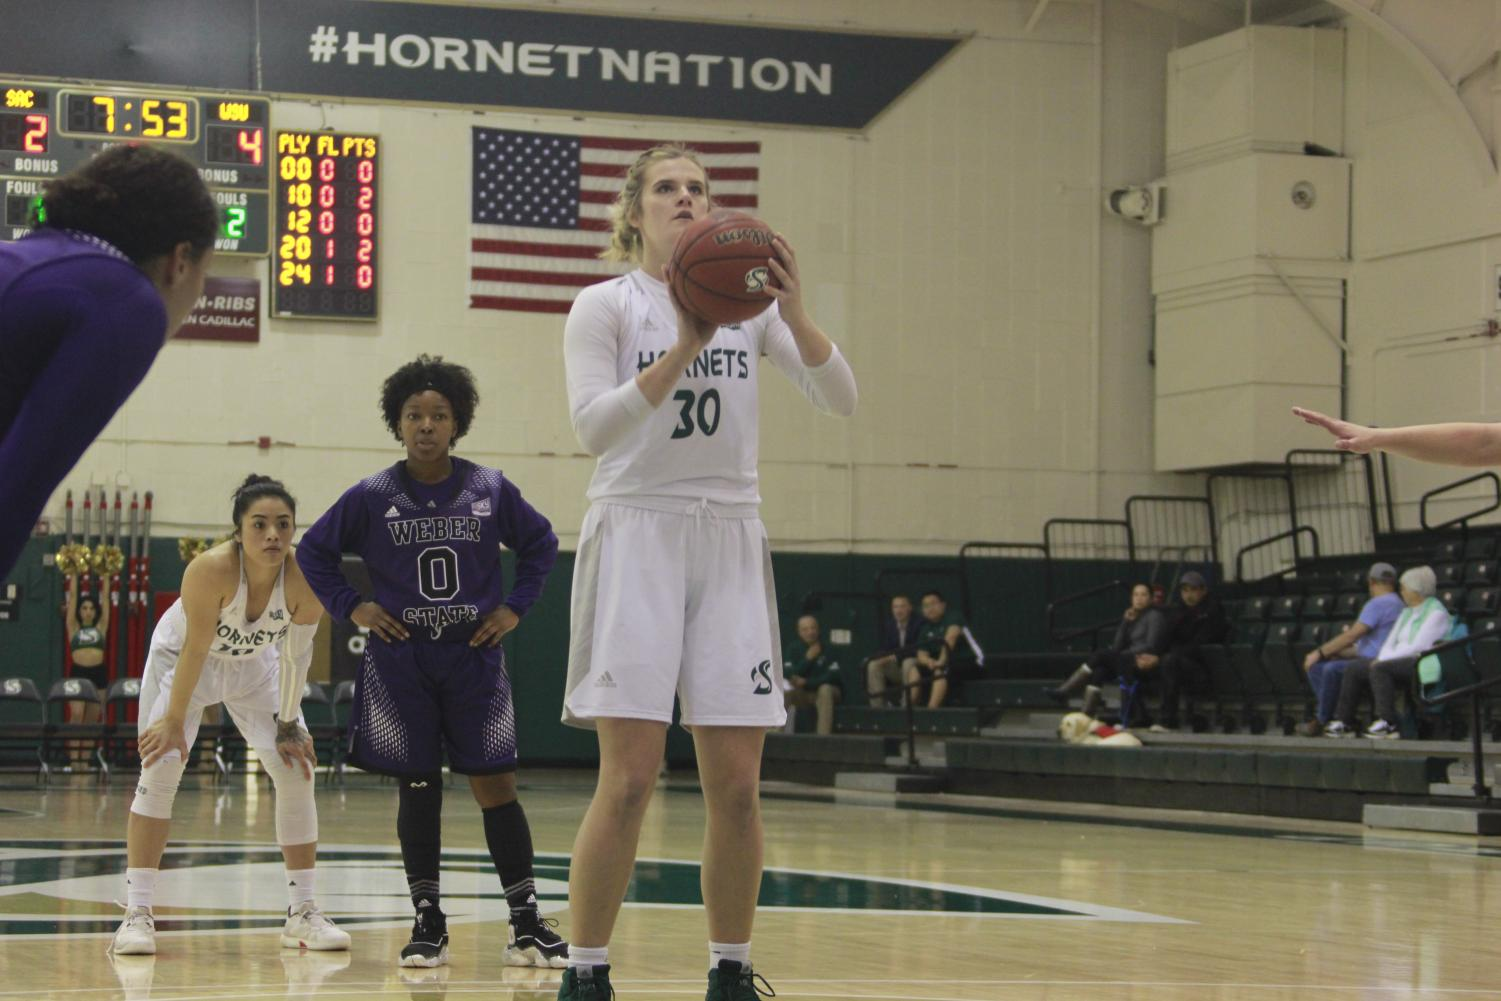 Sac State junior forward Kennedy Nicholas shoots a free throw during the Hornets 77-62 win over Weber State at the Nest on Saturday. Nicholas had 20 points and 12 rebounds (5 offensive) and four blocks for her fifth double-double in the last six games.